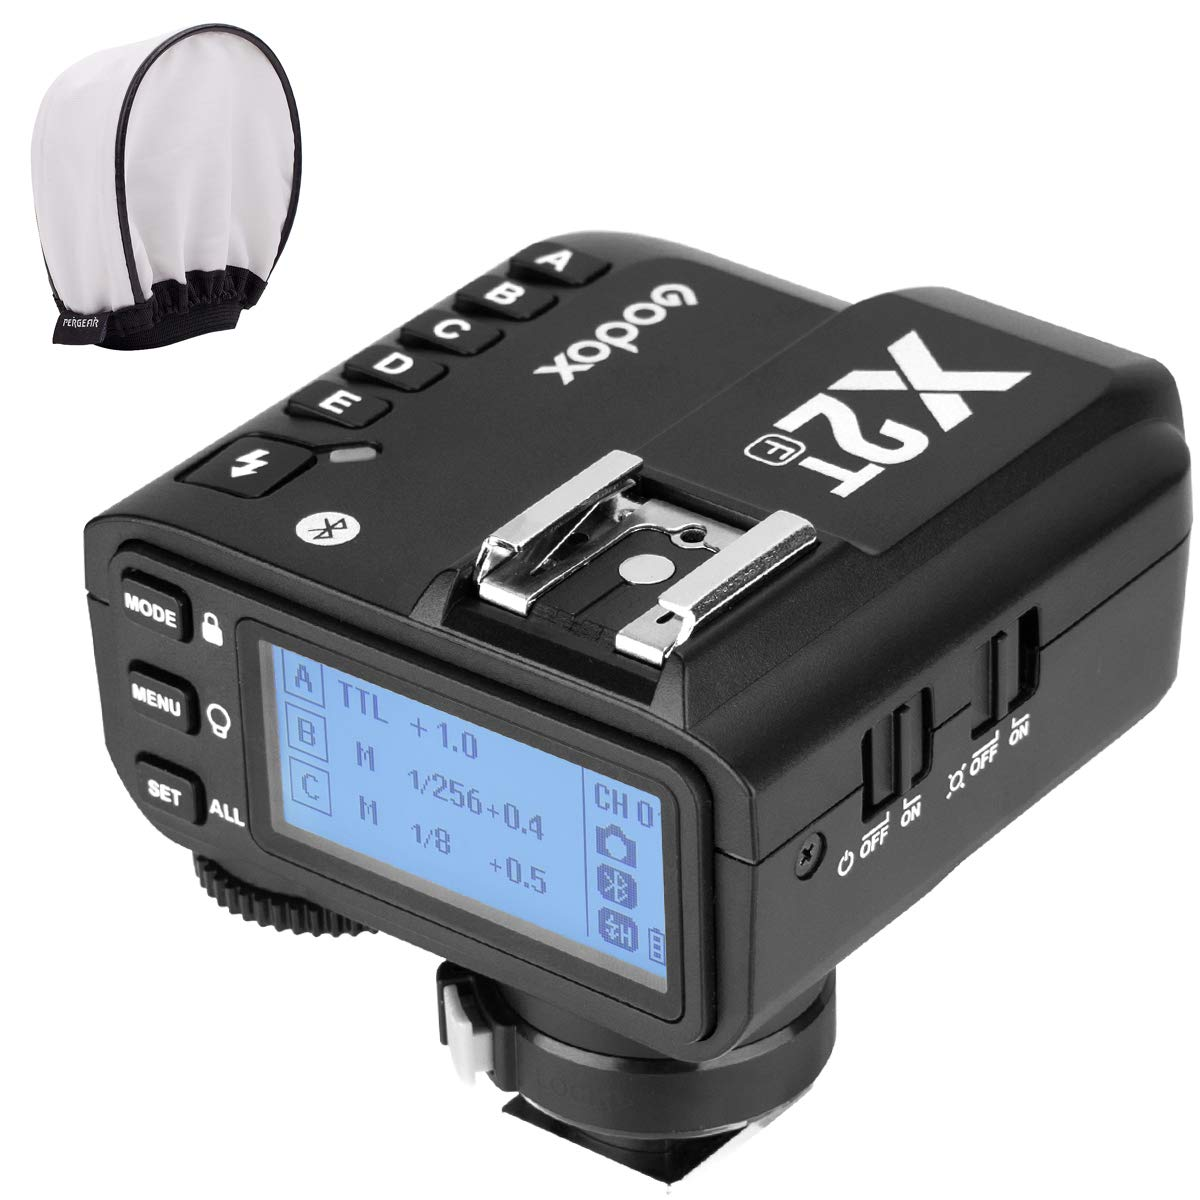 Godox X2T-F TTL Wireless Flash Trigger for Fujifilm Fuji, Bluetooth Connection, 1/8000s HSS, 5 Separate Group Buttons, Relocated Control-Wheel, New Hotshoe Locking, New AF Assist Light by Godox